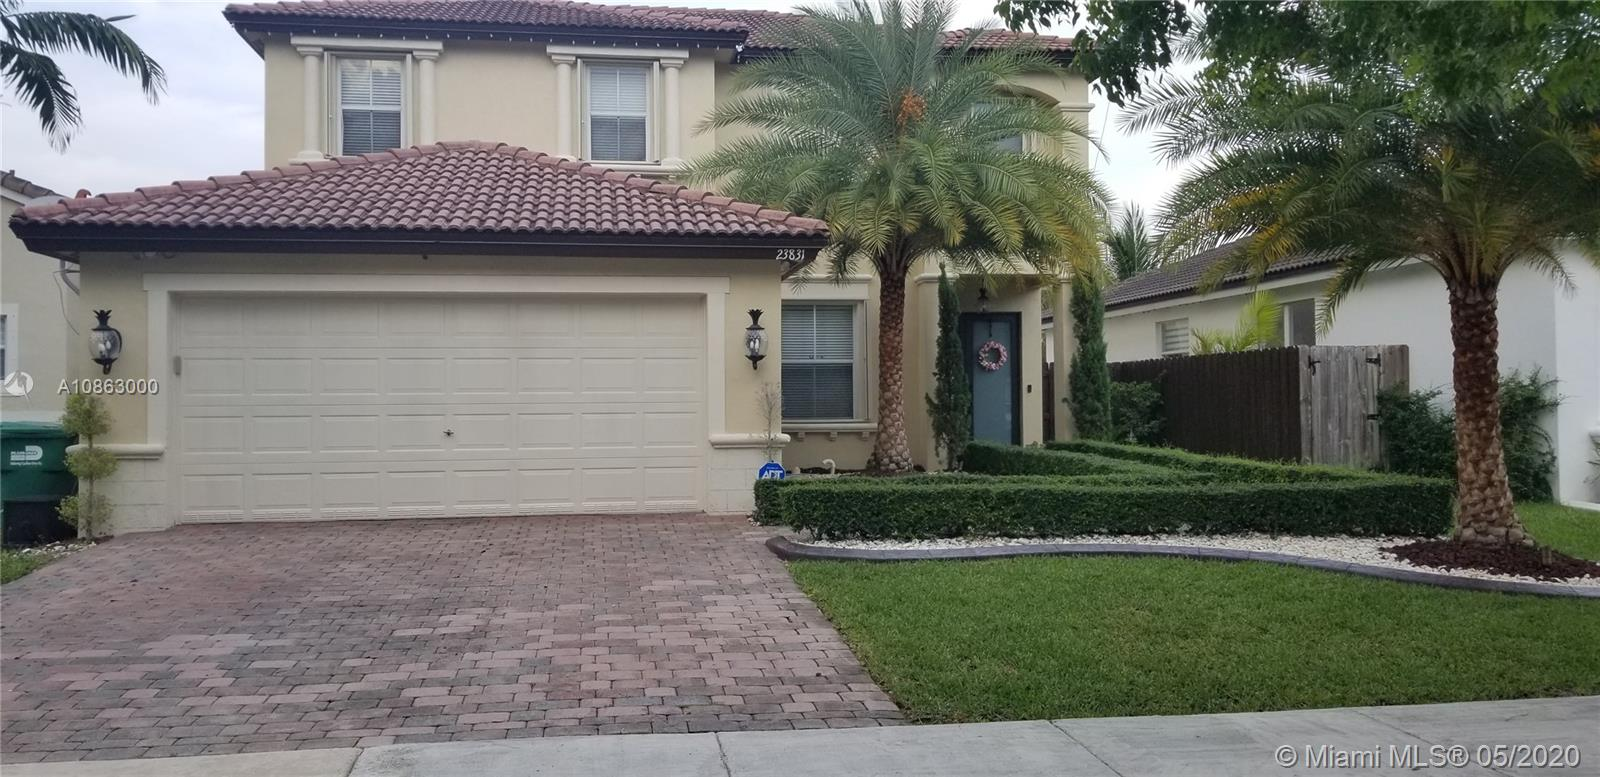 23831 SW 108th Ave Property Photo - Homestead, FL real estate listing